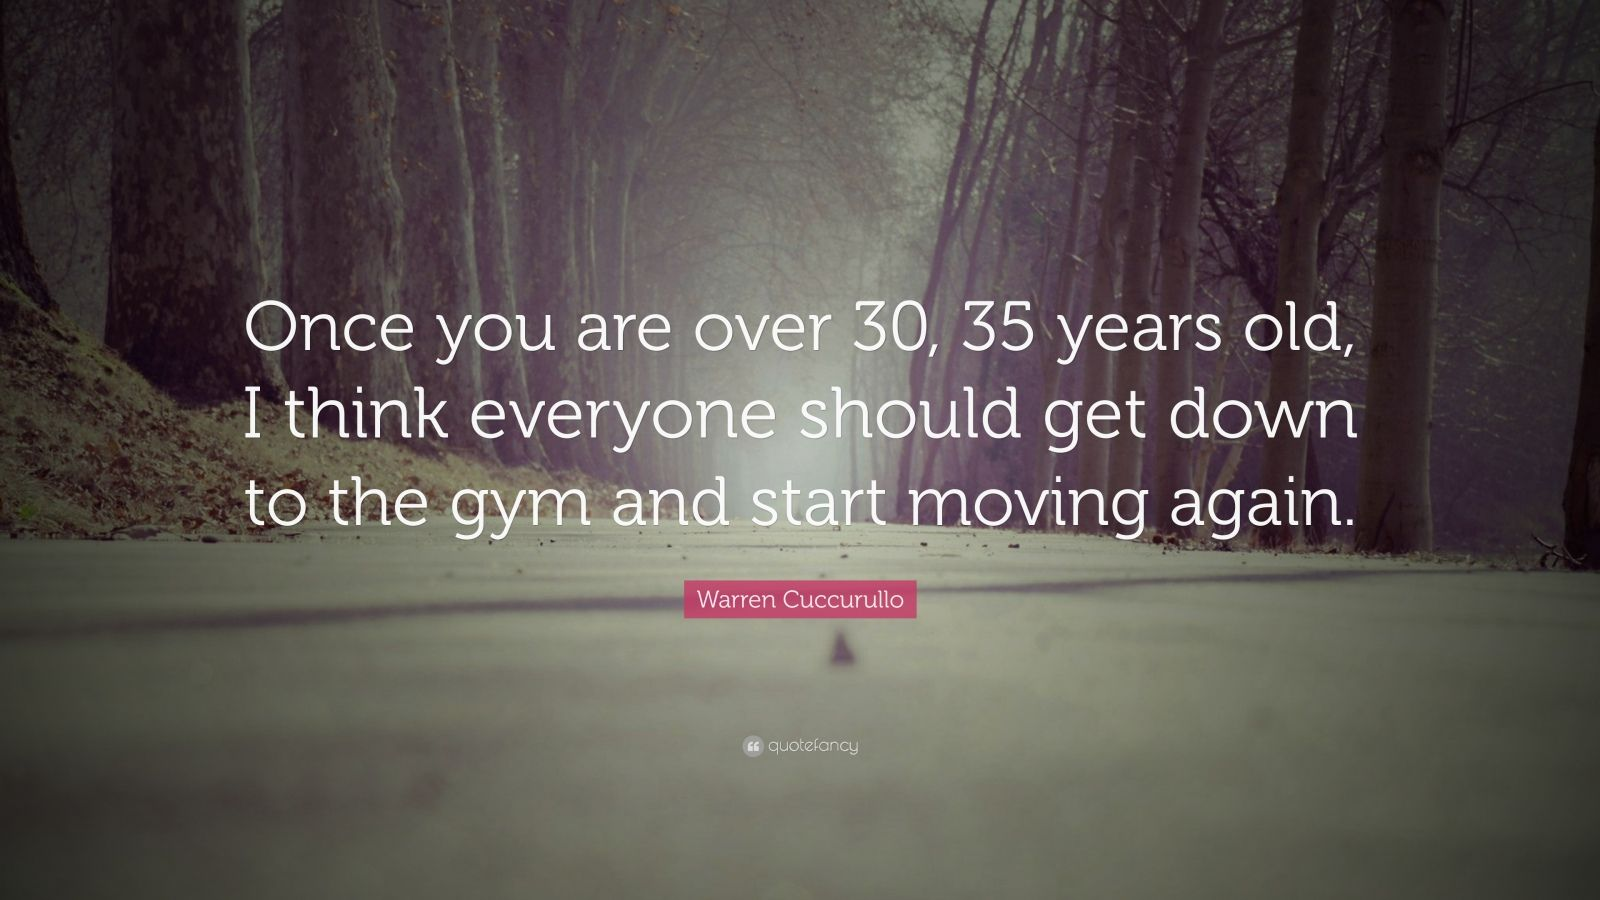 "Quotes About Being 35 Years Old: Warren Cuccurullo Quote: ""Once You Are Over 30, 35 Years"